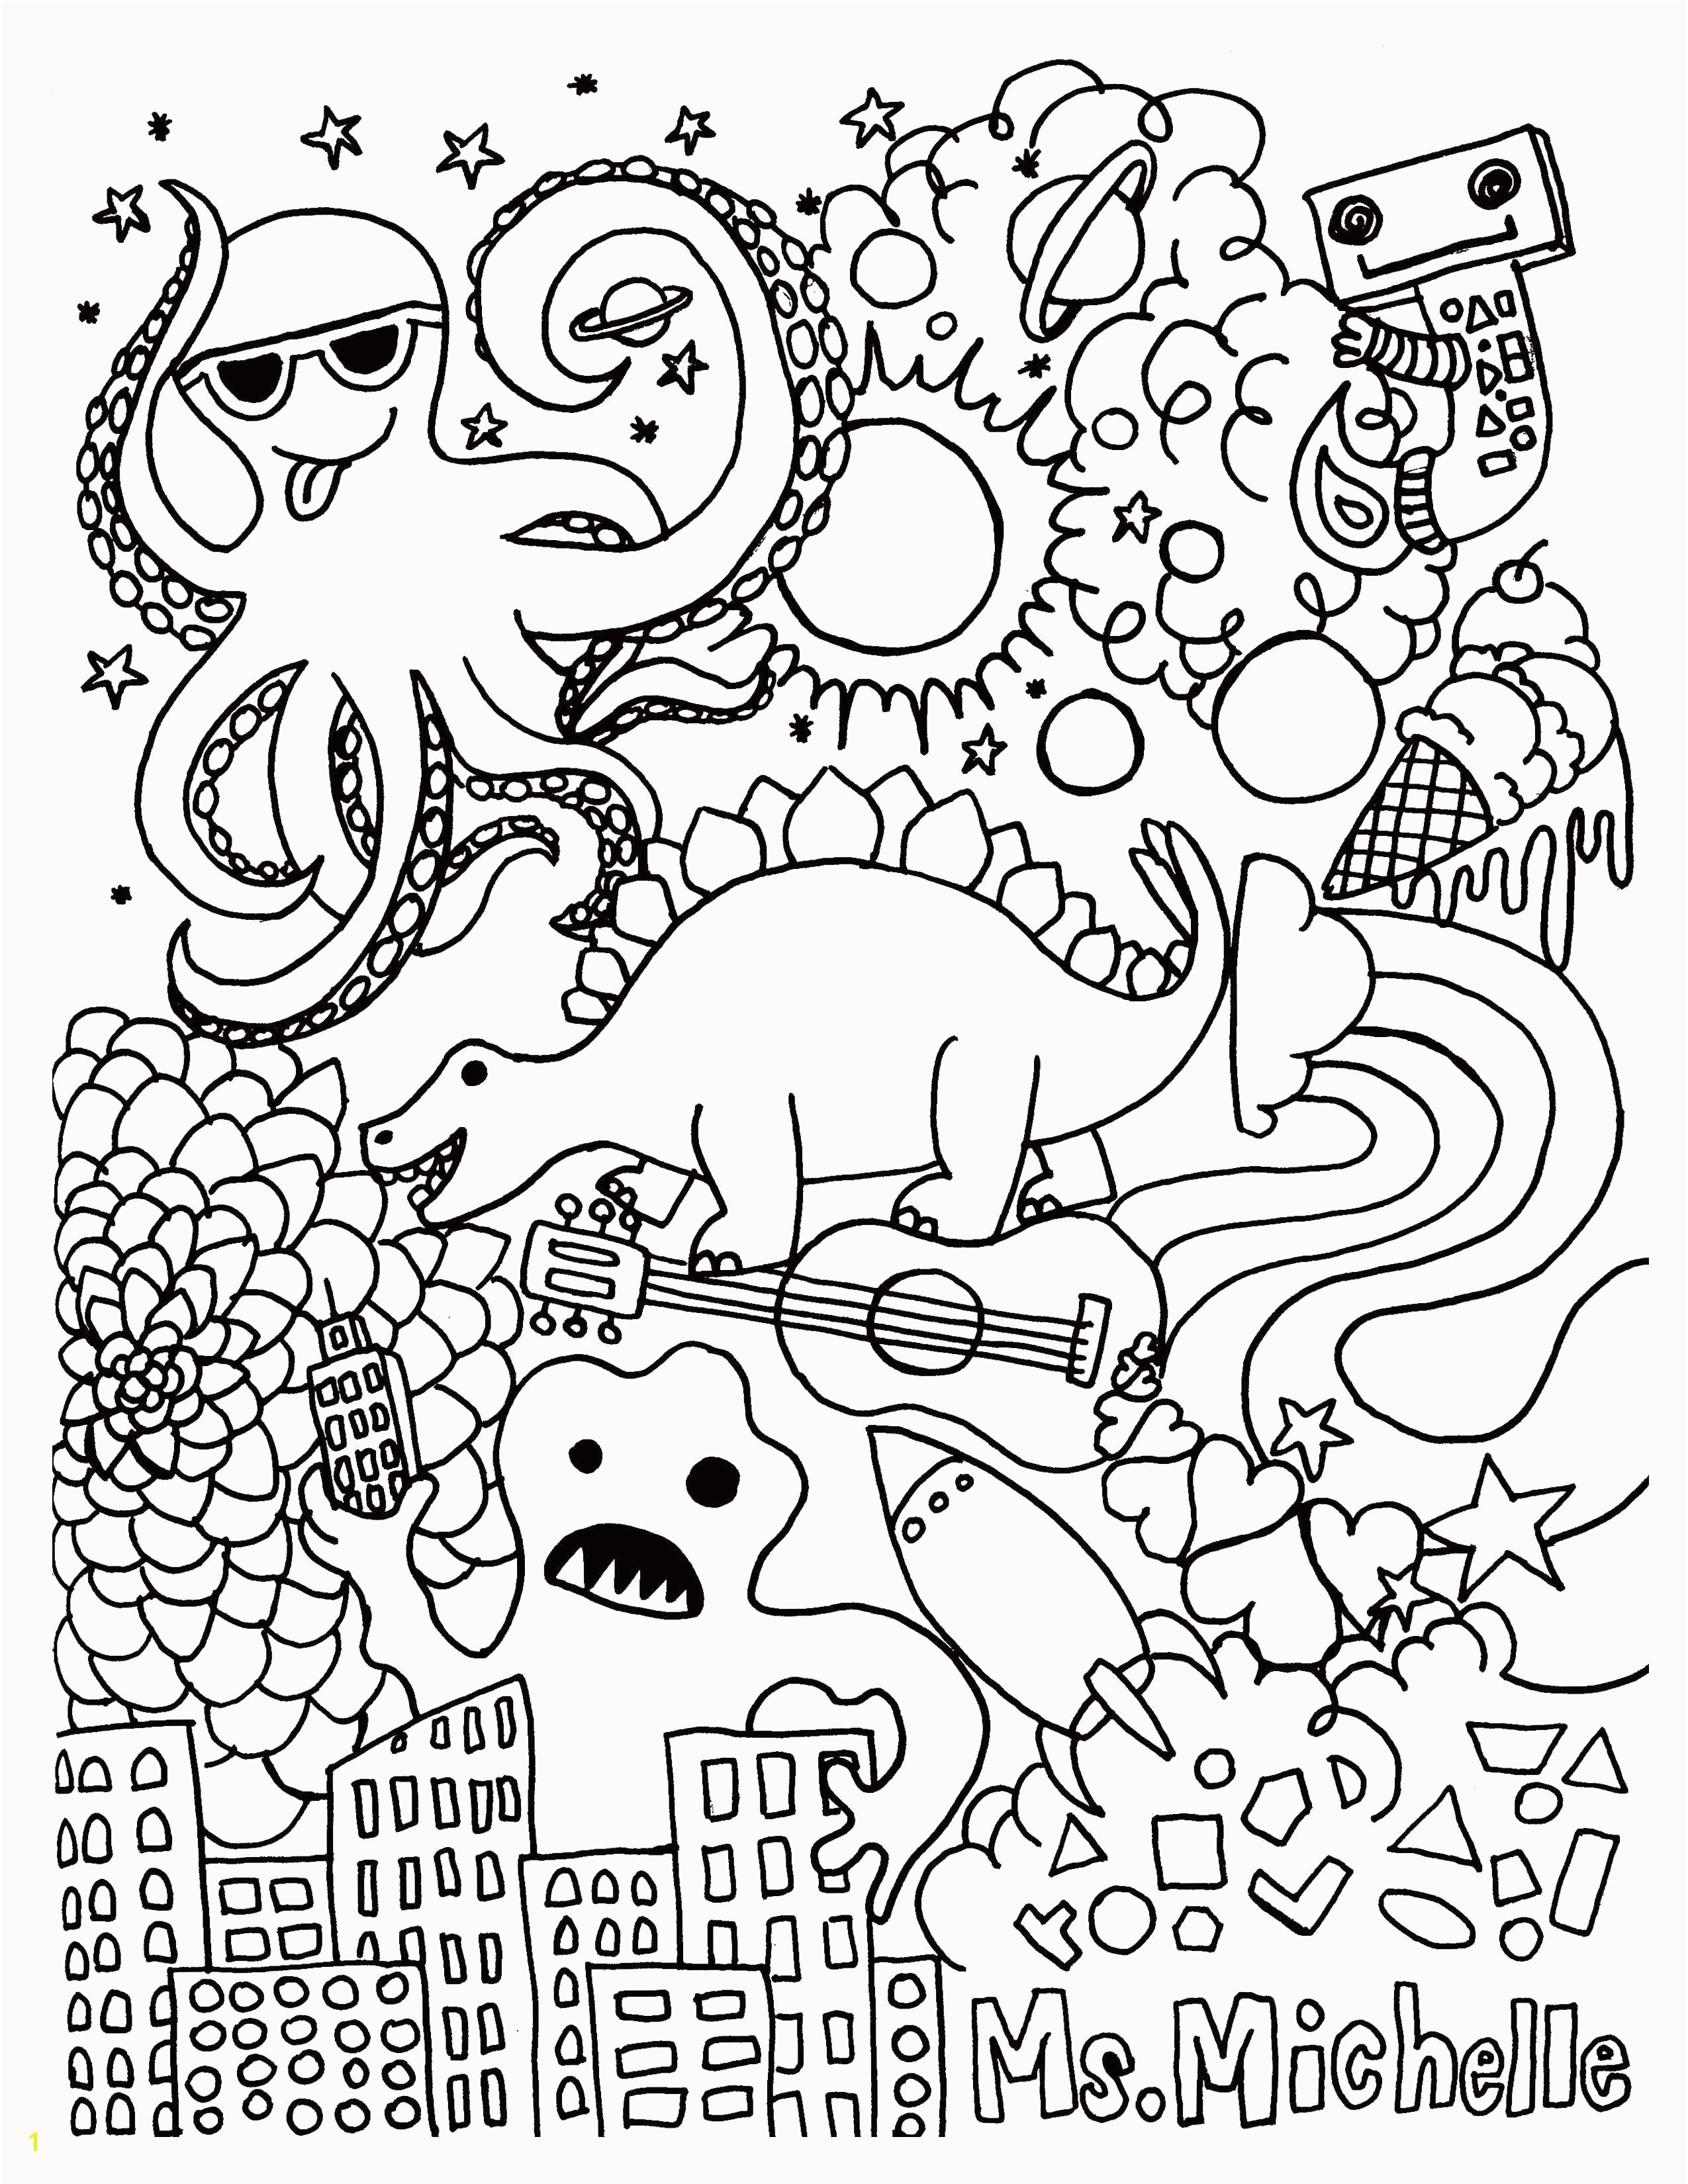 Adult Halloween Coloring Pages Free Best Free Coloring Pages for Halloween Unique Best Coloring Page